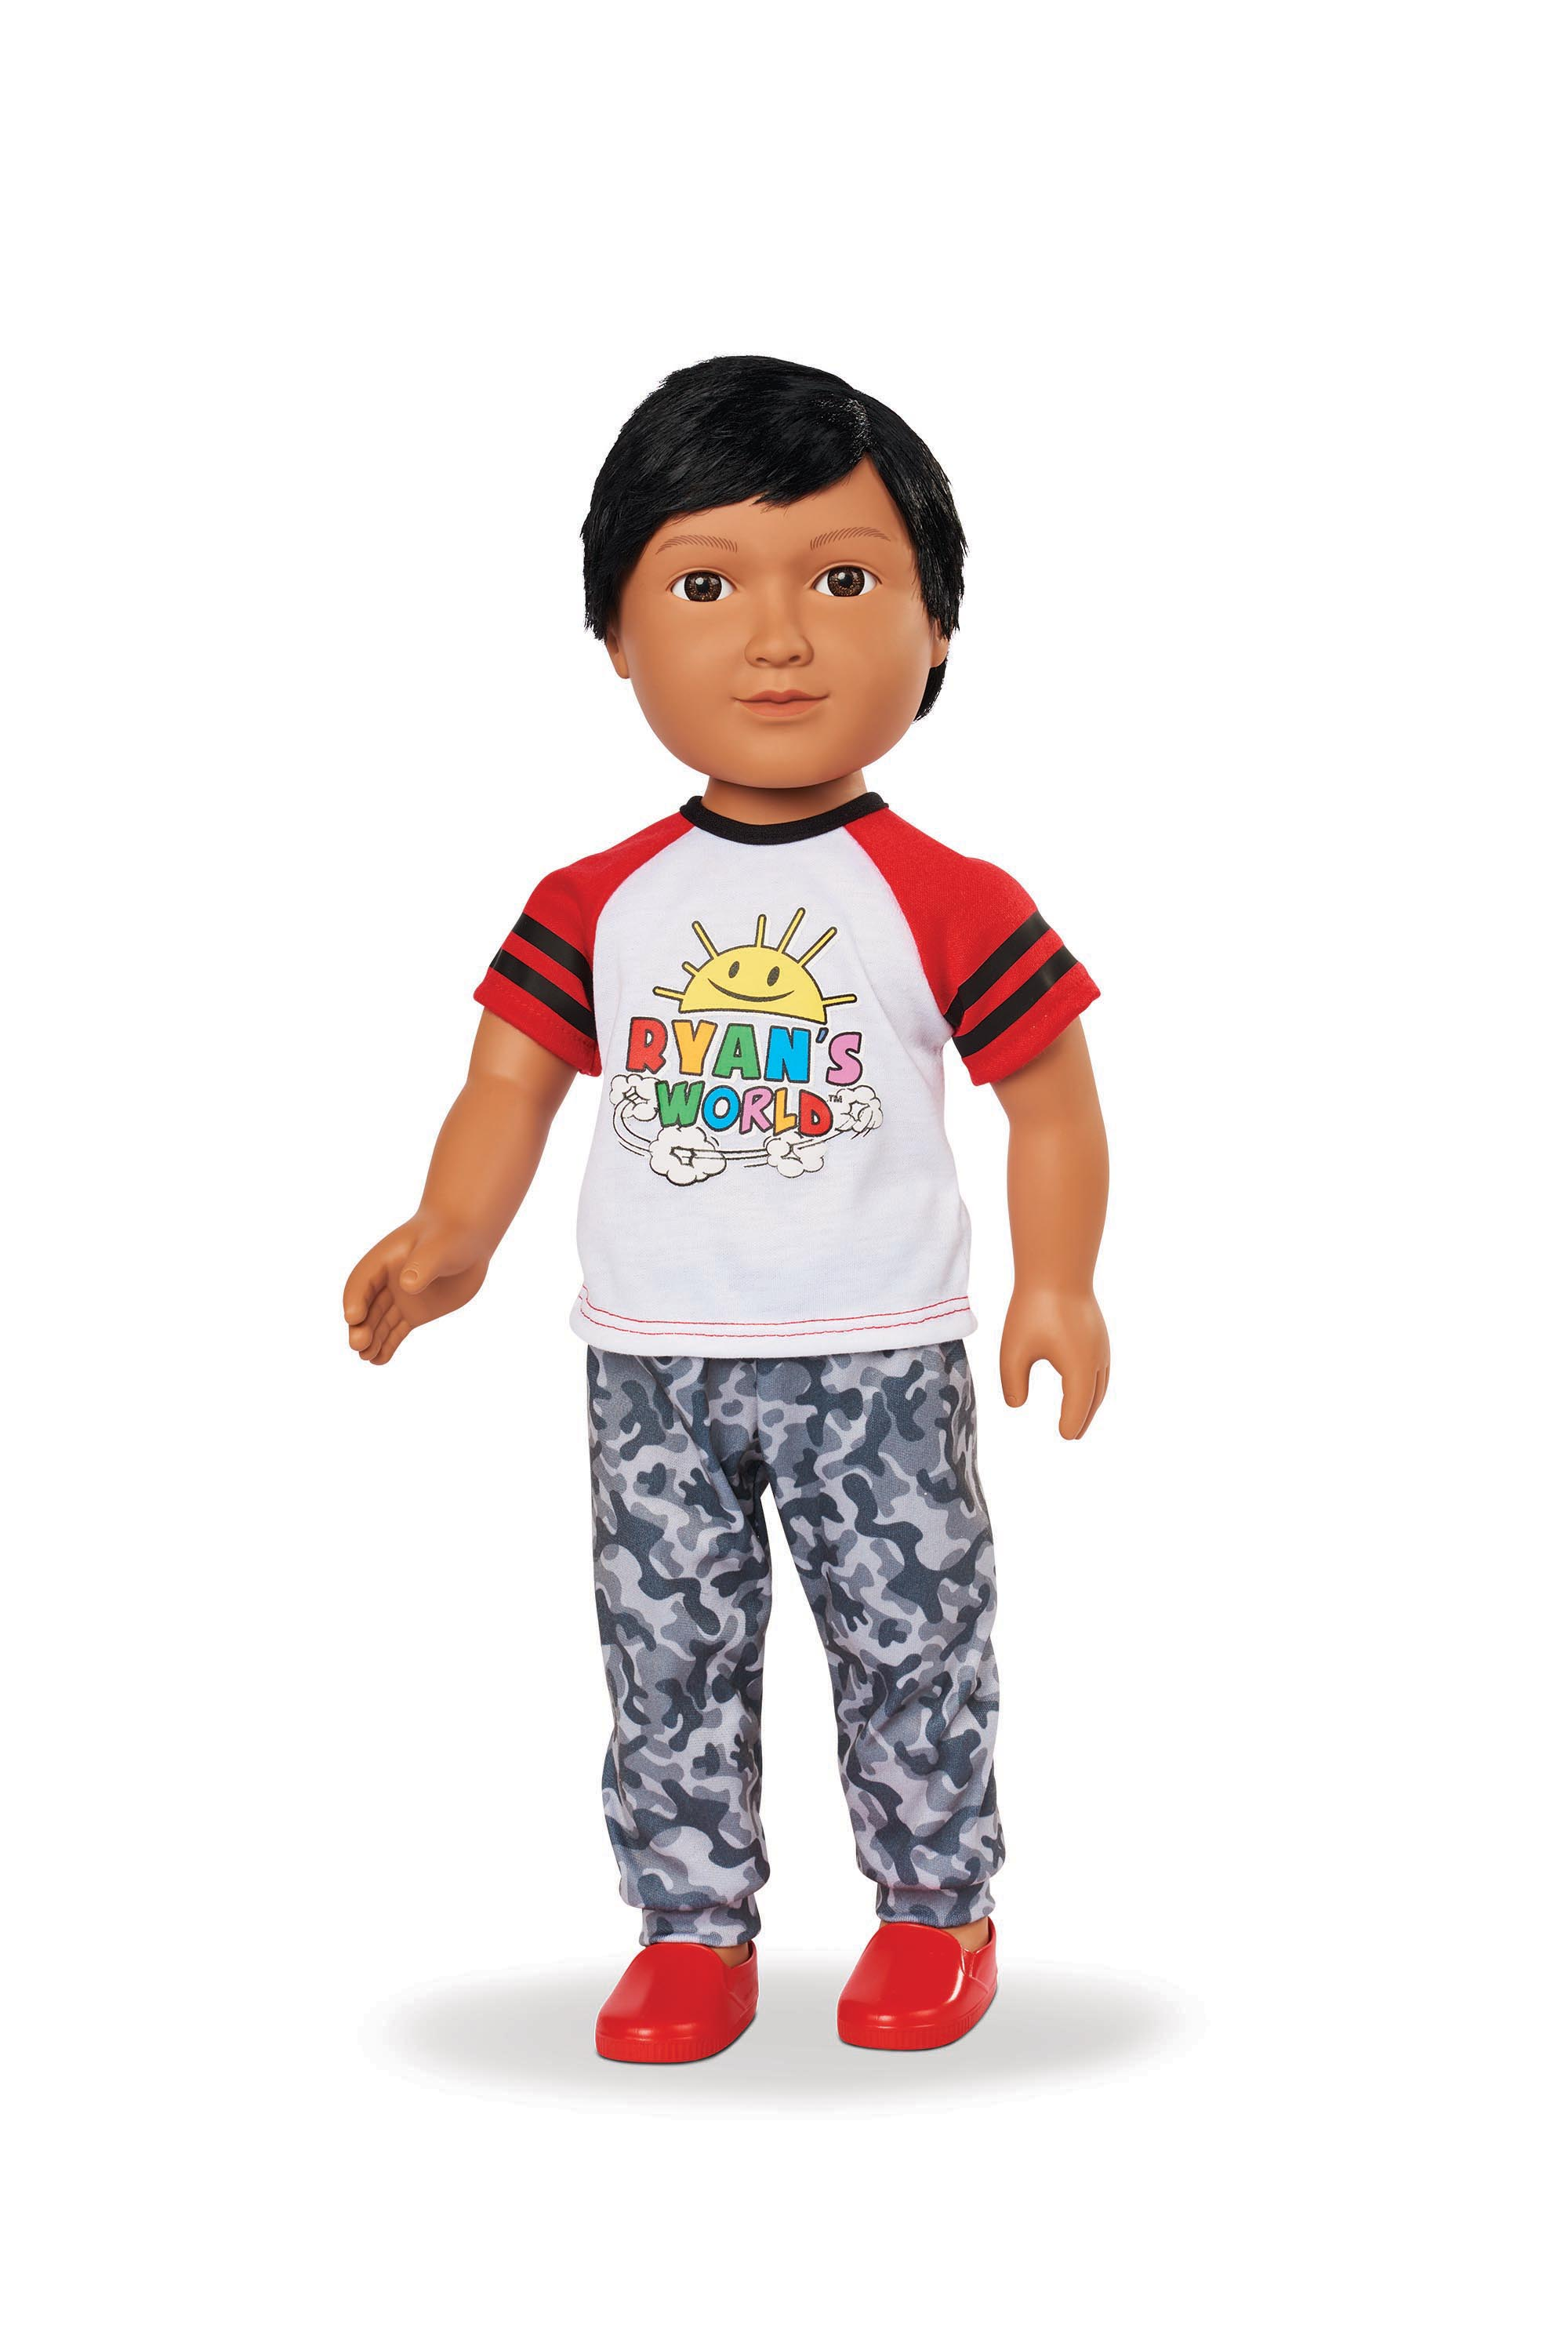 My Life As 7-Piece Ryan's World Doll and Mystery Surprise Set FREE SHIP!!!